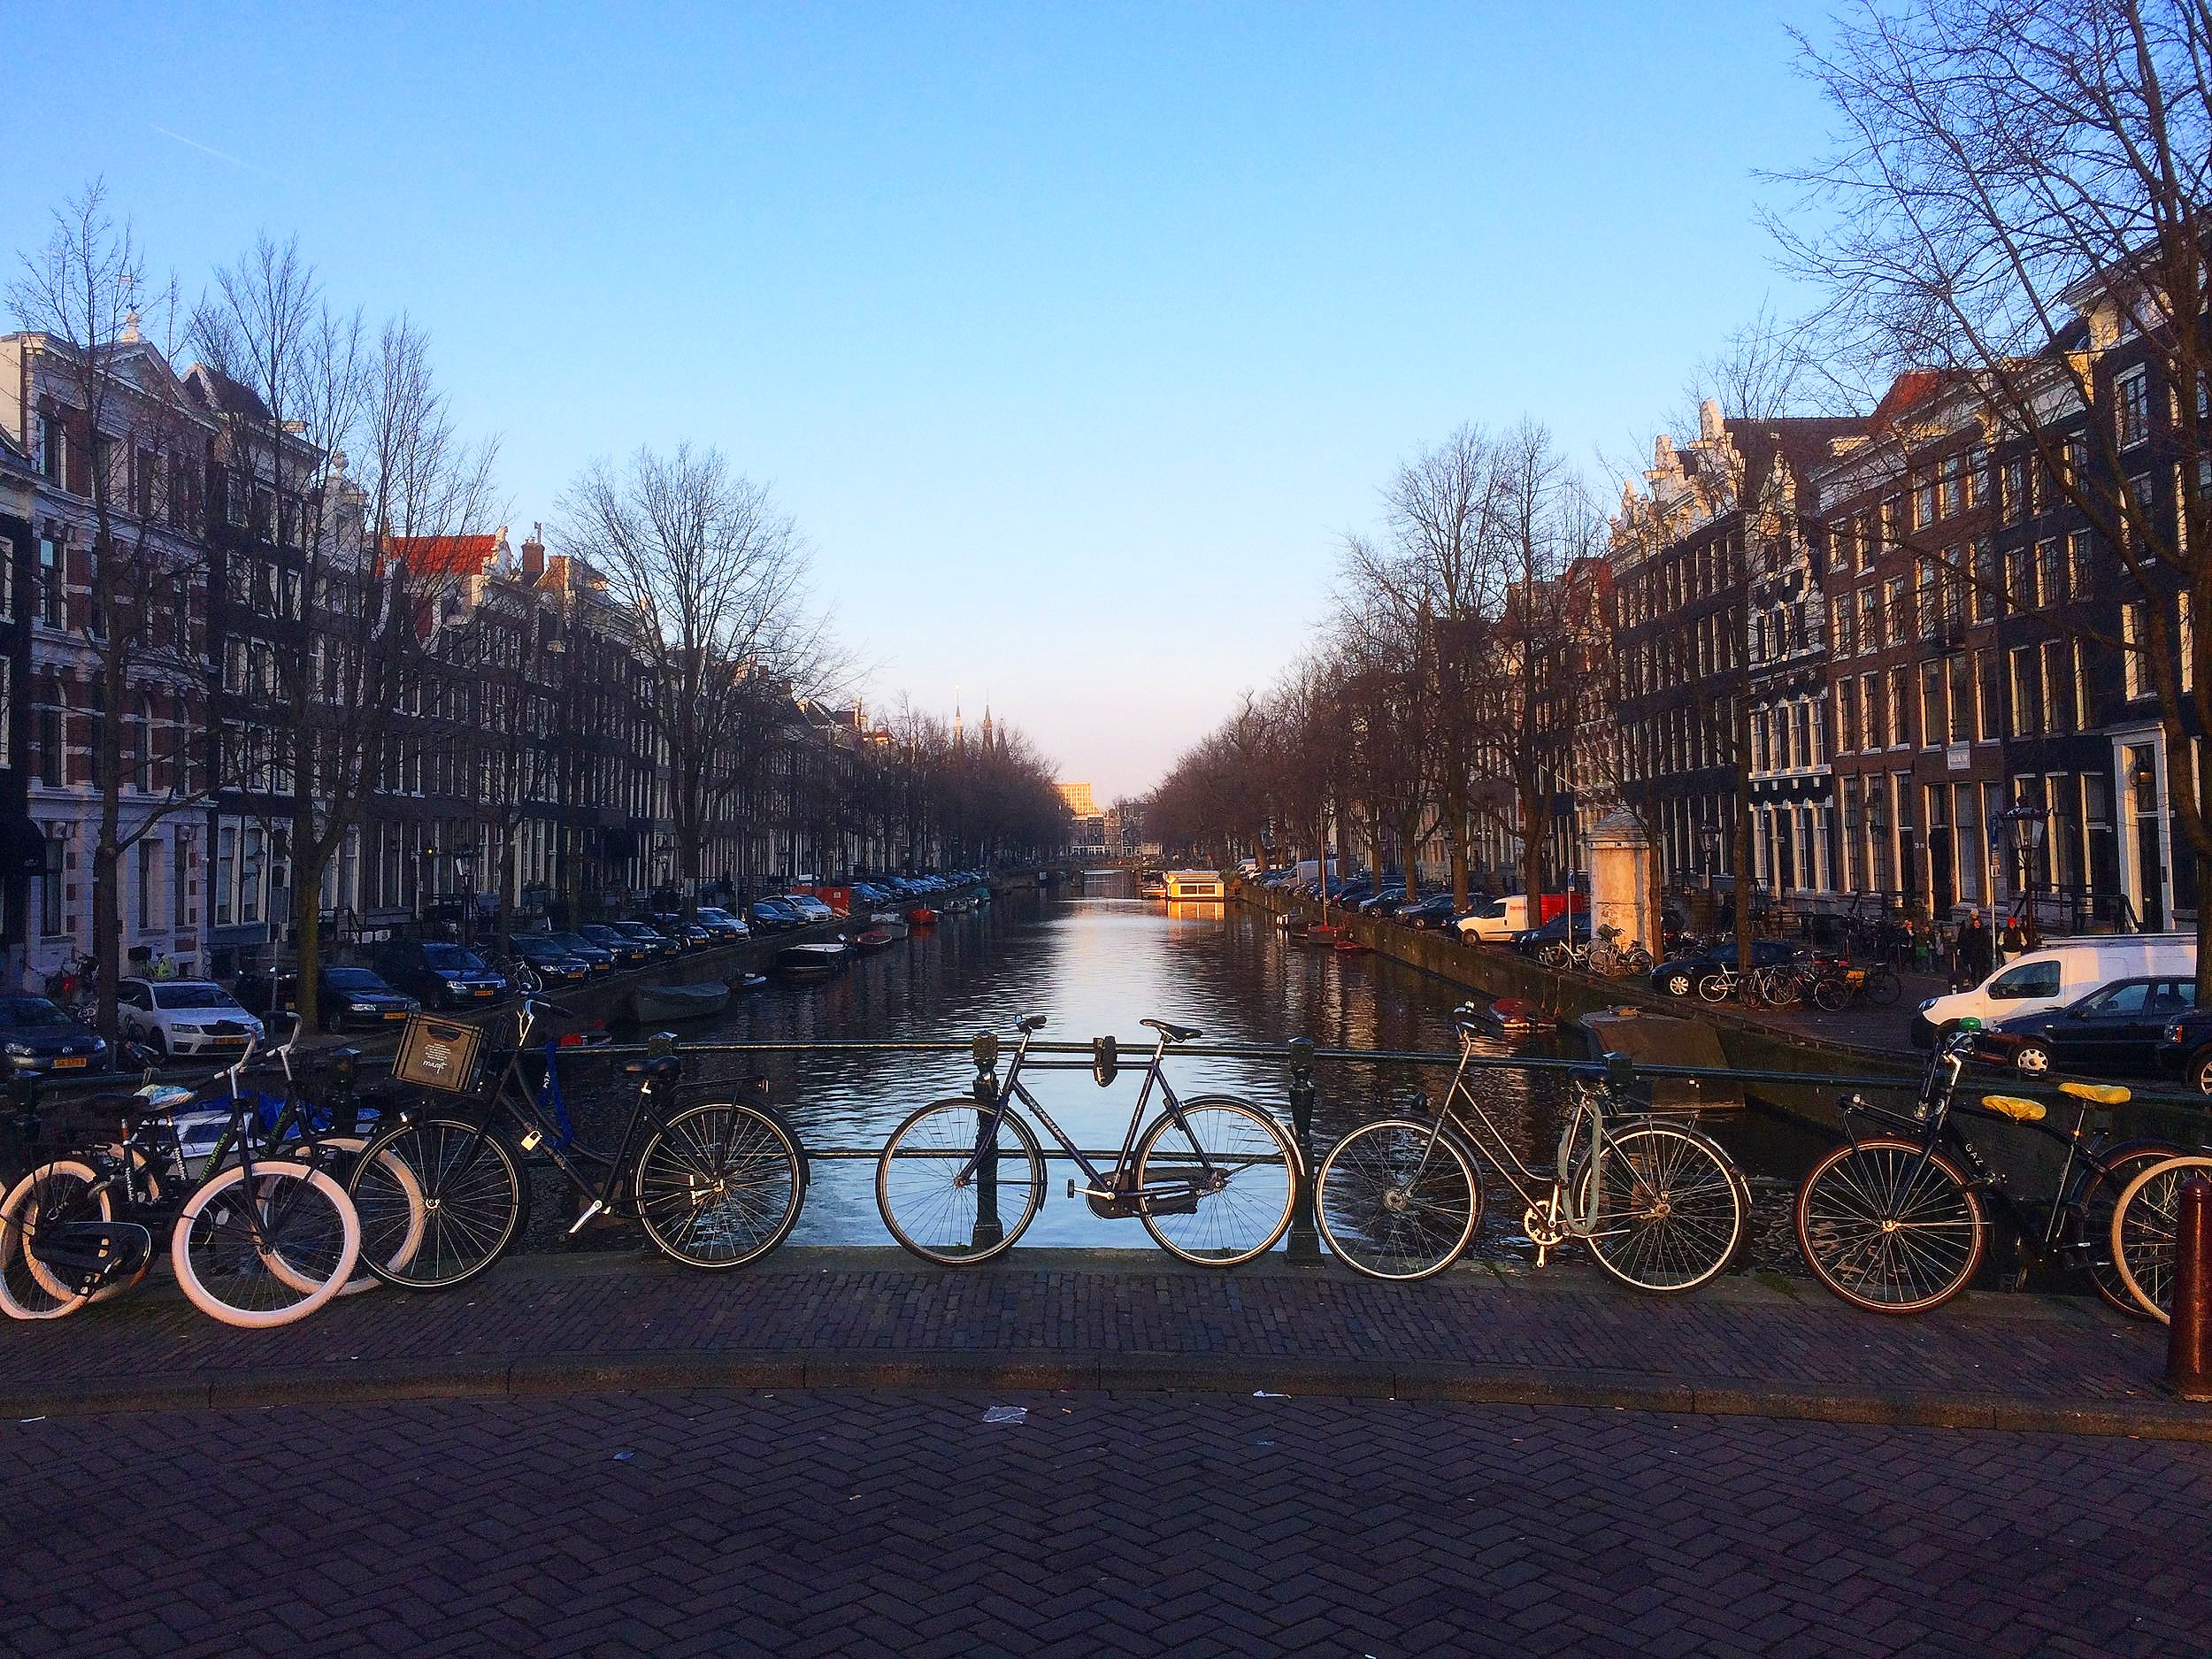 bikes chained to a bridge railing in Amsterdam